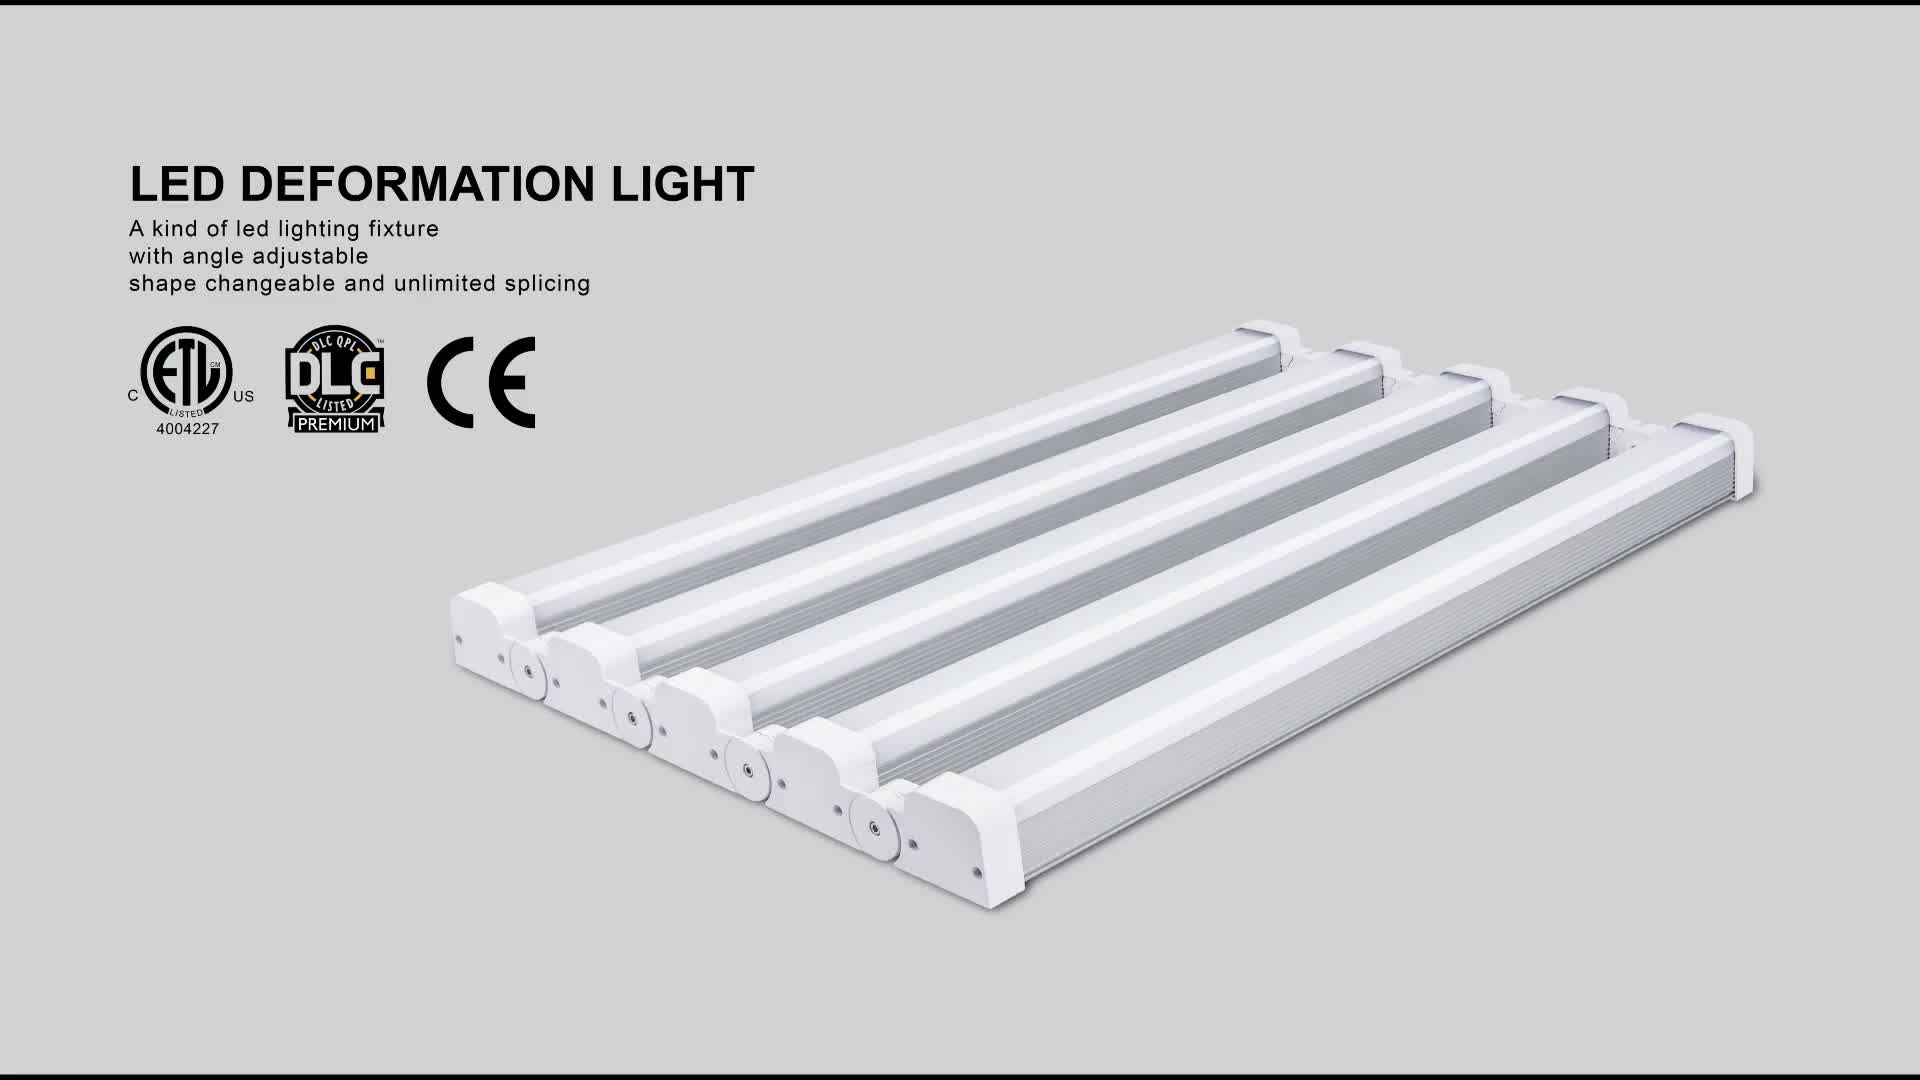 0.6m 1.2m Warehouse Low bay LED defromable light fxture